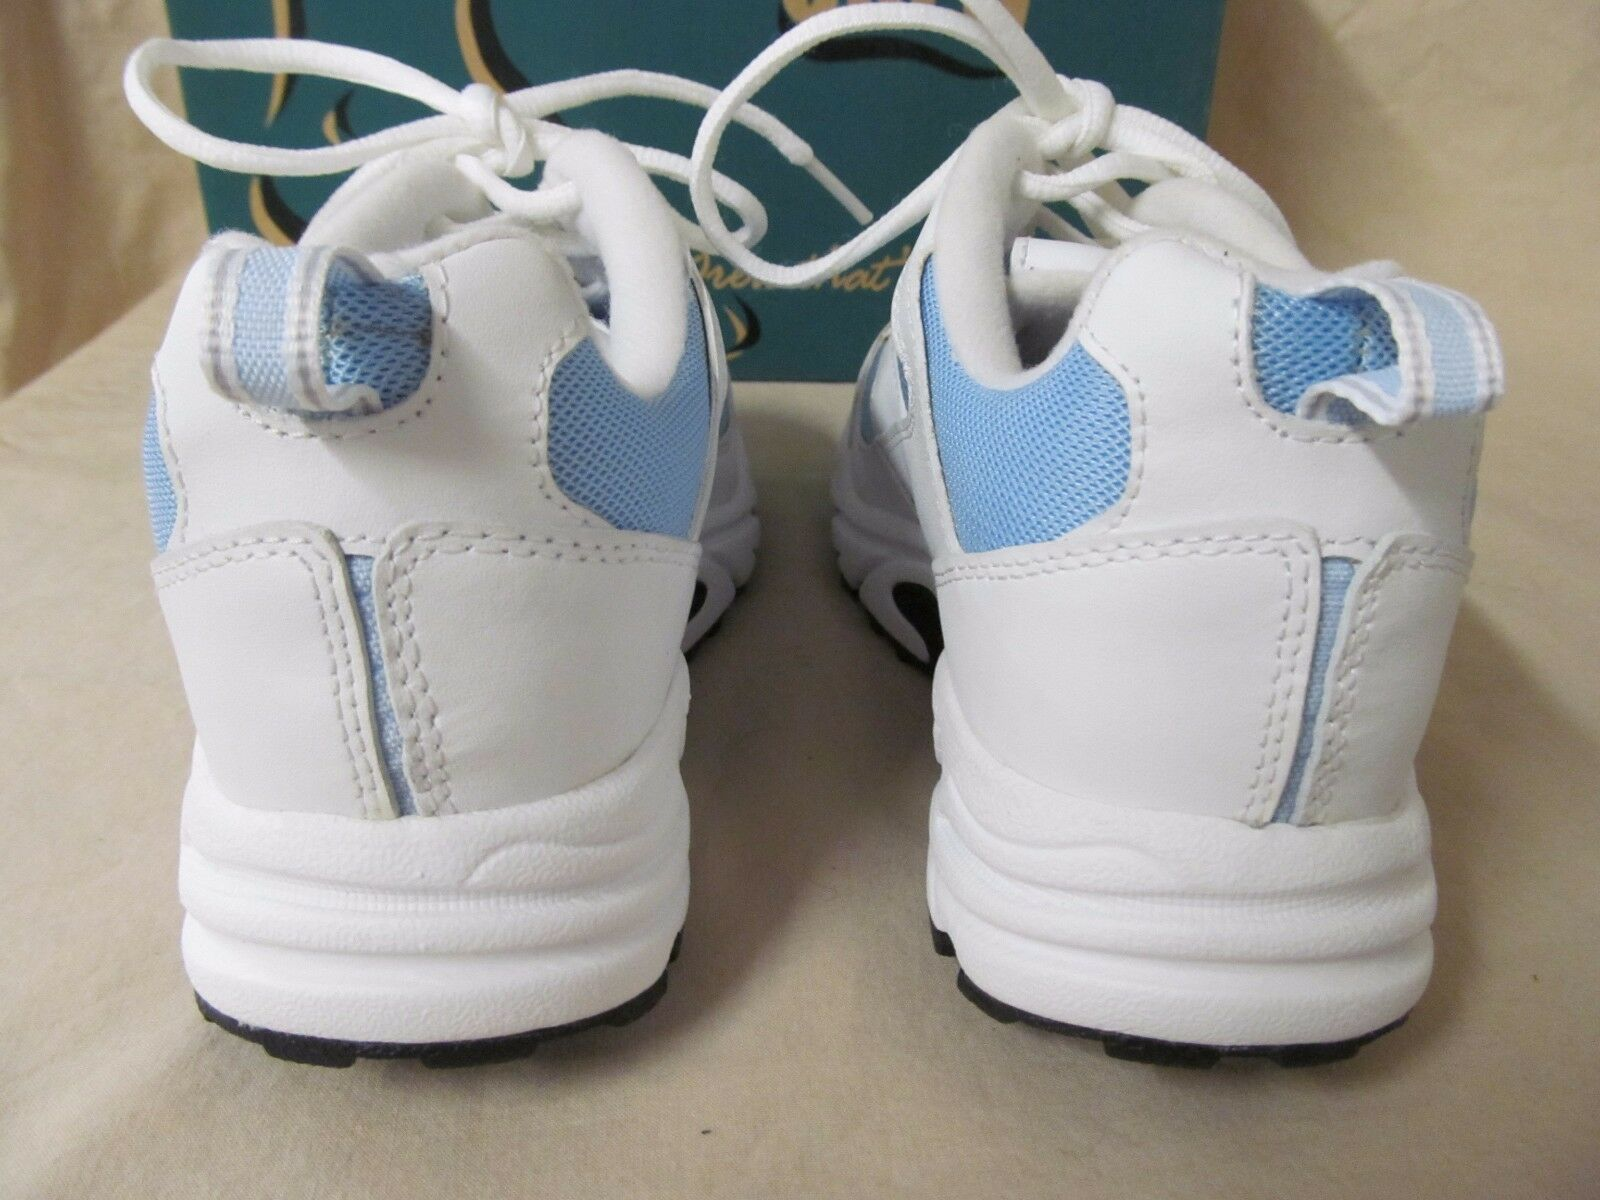 NWD Drew 7 M Flash WEISS & Blau Leder Lace Up Athletic Schuhes Sneakers B